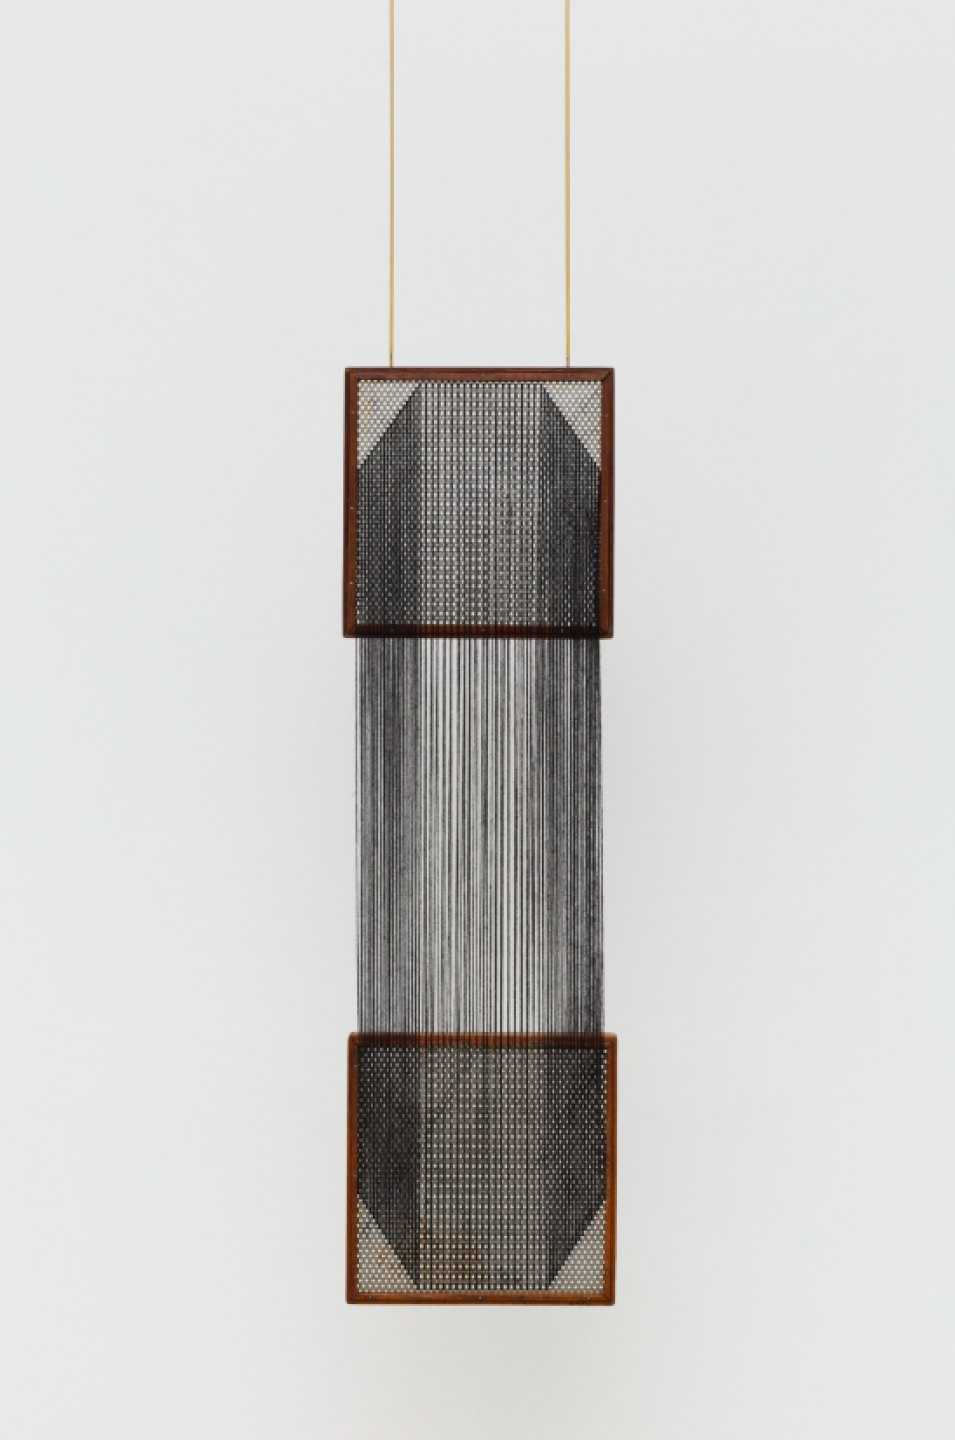 Paloma Bosquê,<em>&nbsp;Das interações provisórias</em>, 2017,&nbsp;coffee sorting sieve, woolen yarn and brass rods, 103&nbsp;× 30&nbsp;× 4,5 cm - Mendes Wood DM